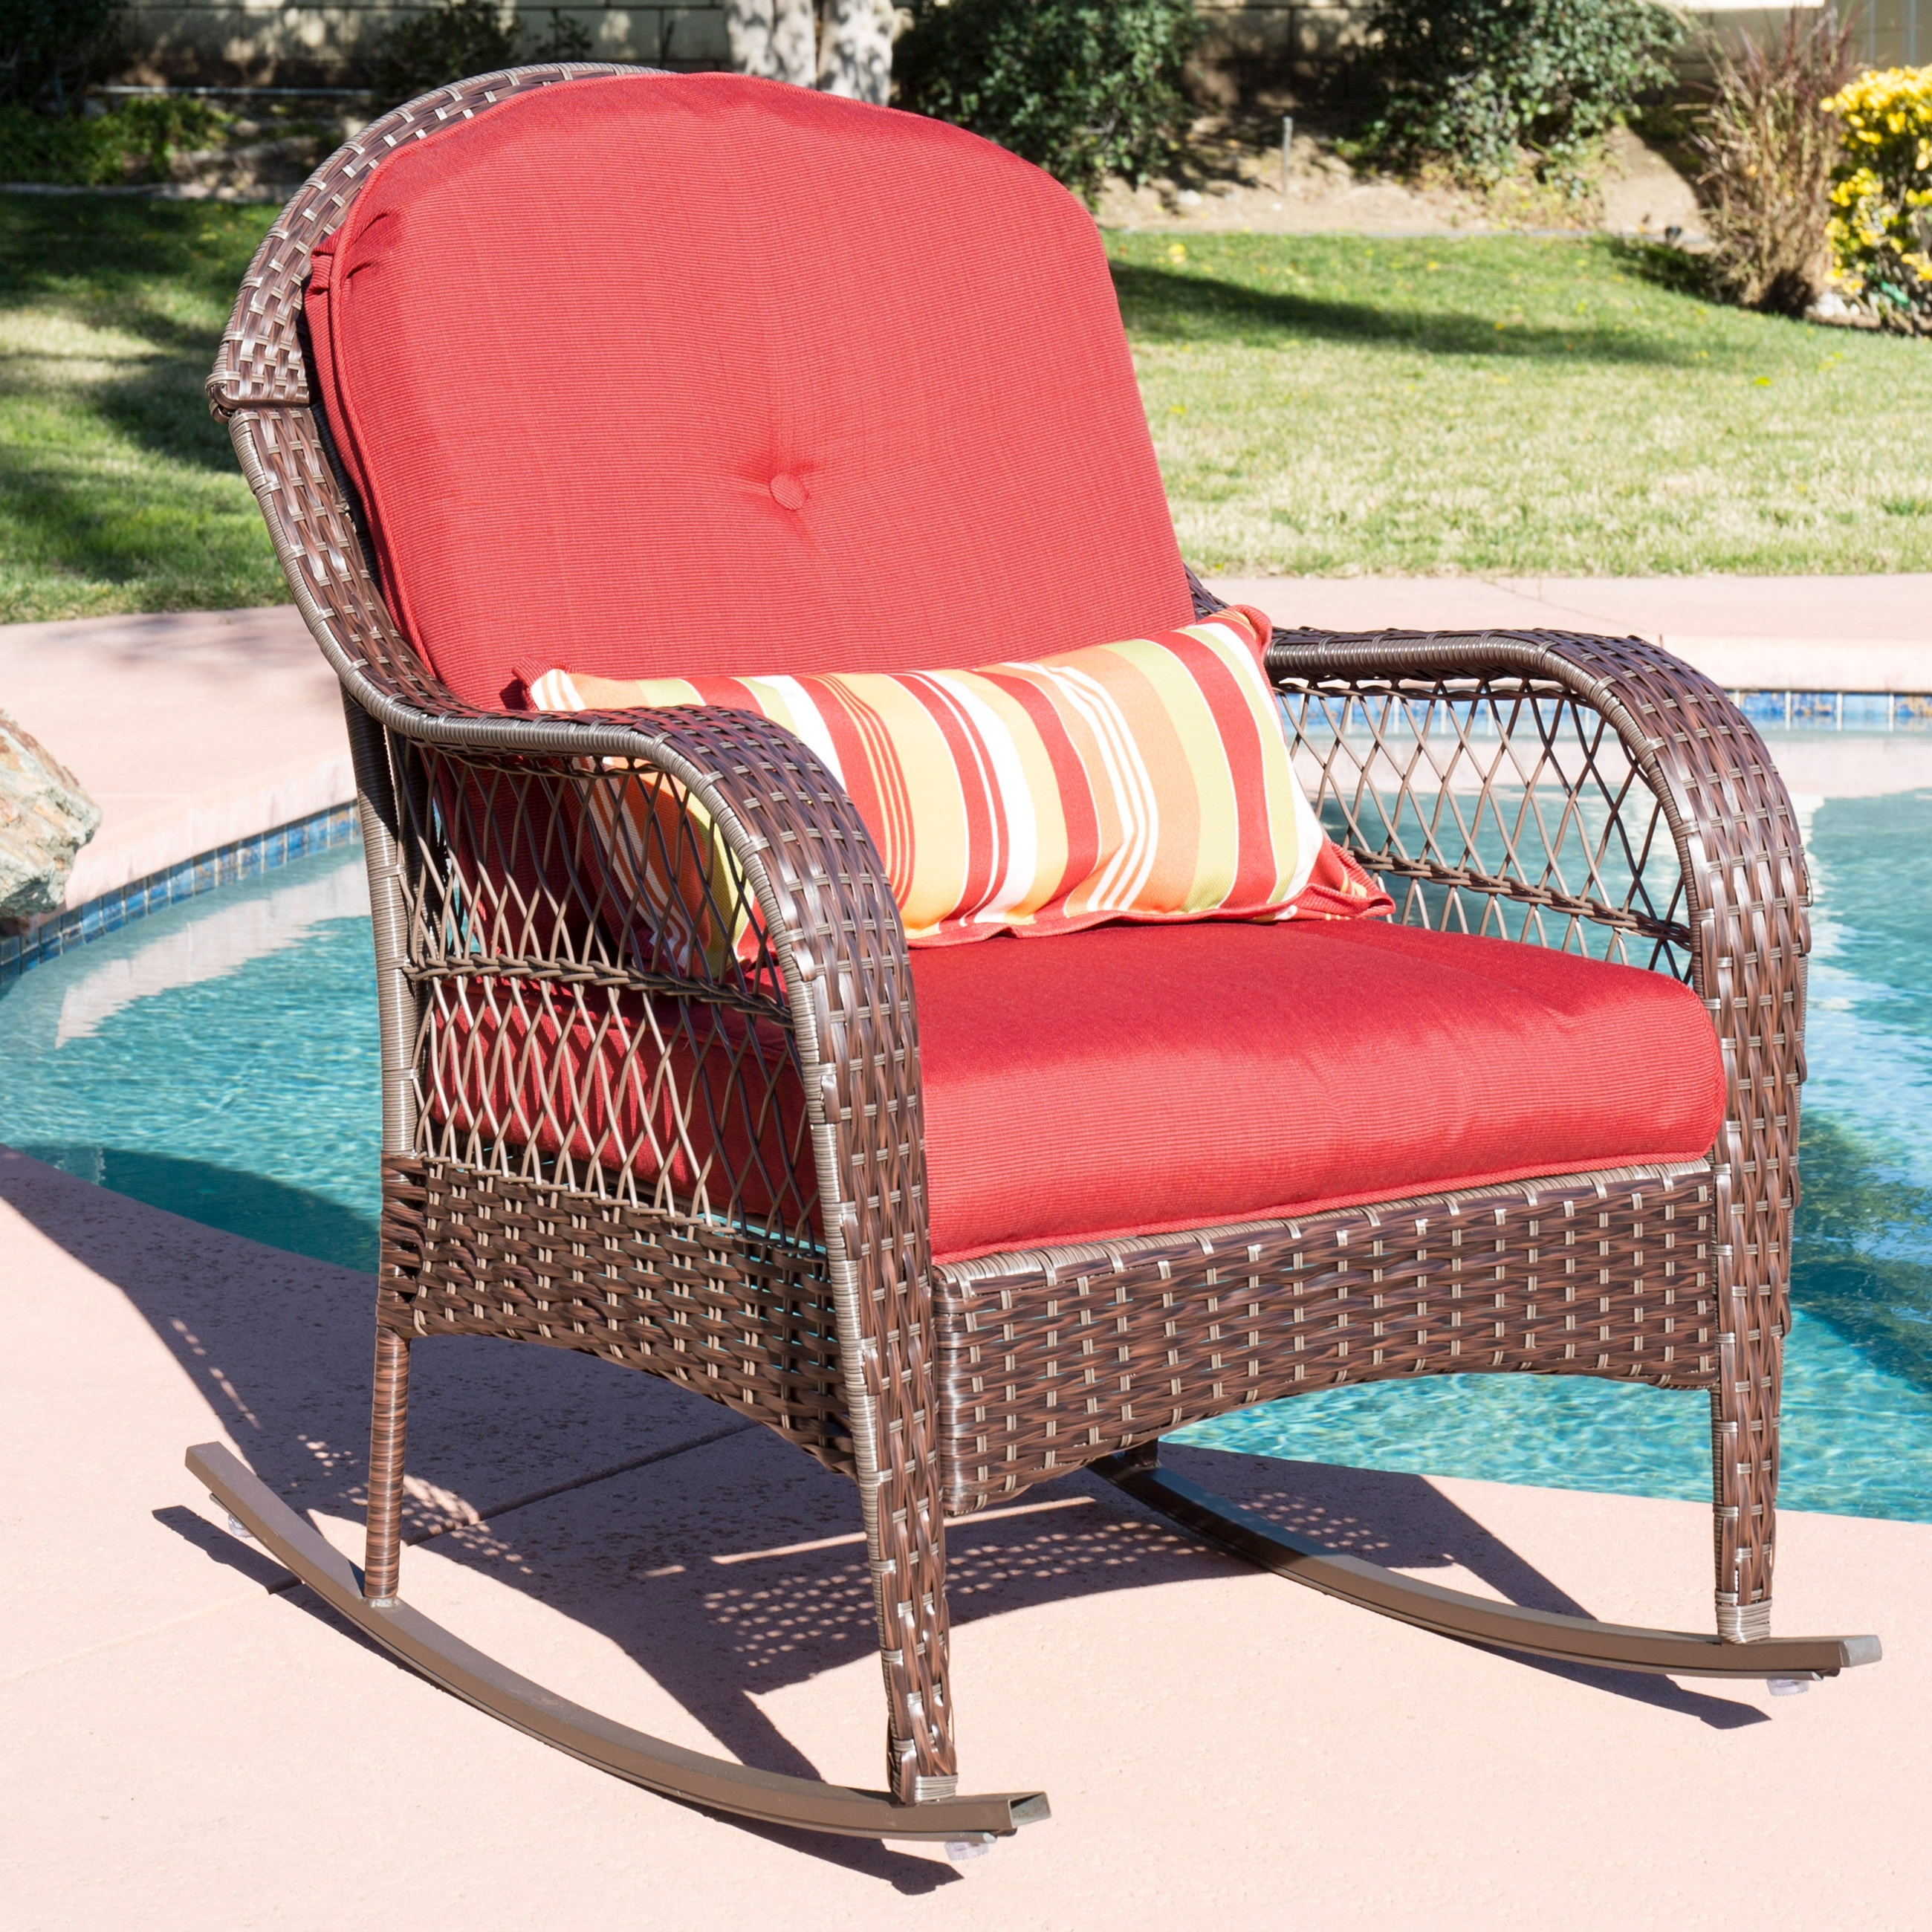 Current Used Patio Rocking Chairs Intended For Best Choice Products Wicker Rocking Chair Patio Porch Deck Furniture (View 3 of 20)